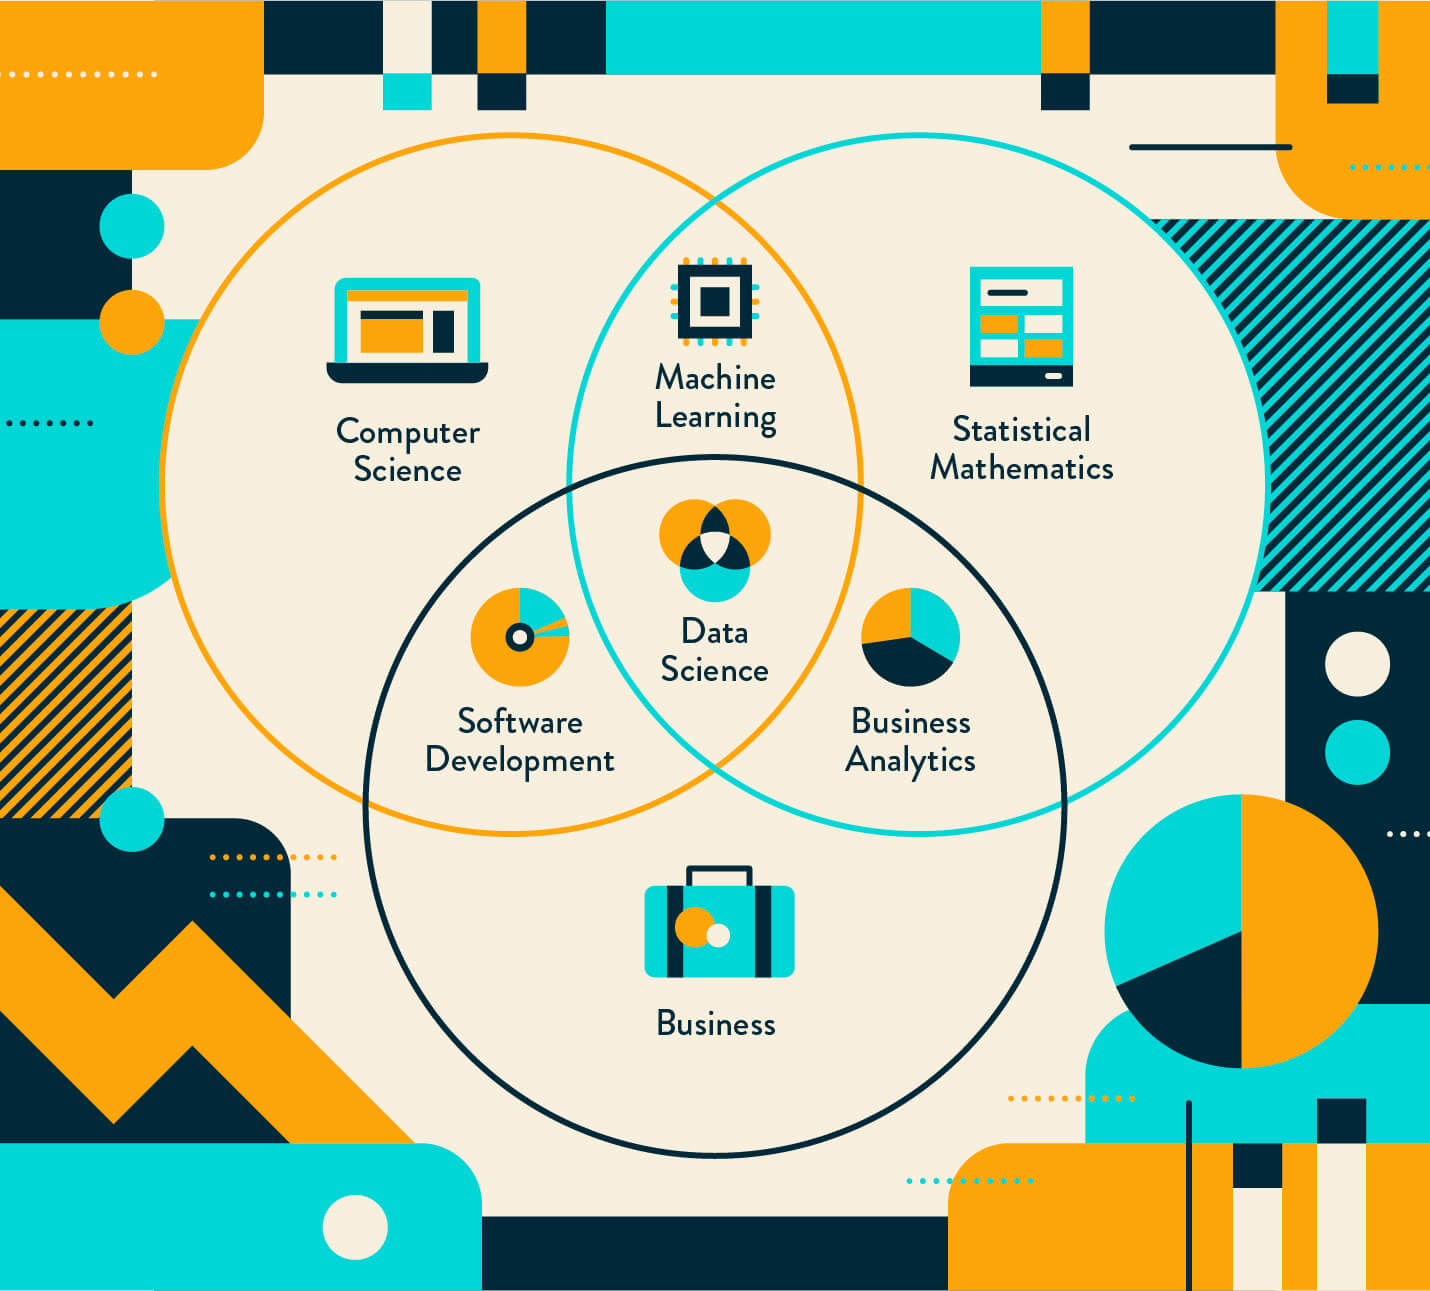 data science combines multiple disciplines outlined in this venn diagram graphic with icons for each and other iconography in shades of blue and orange